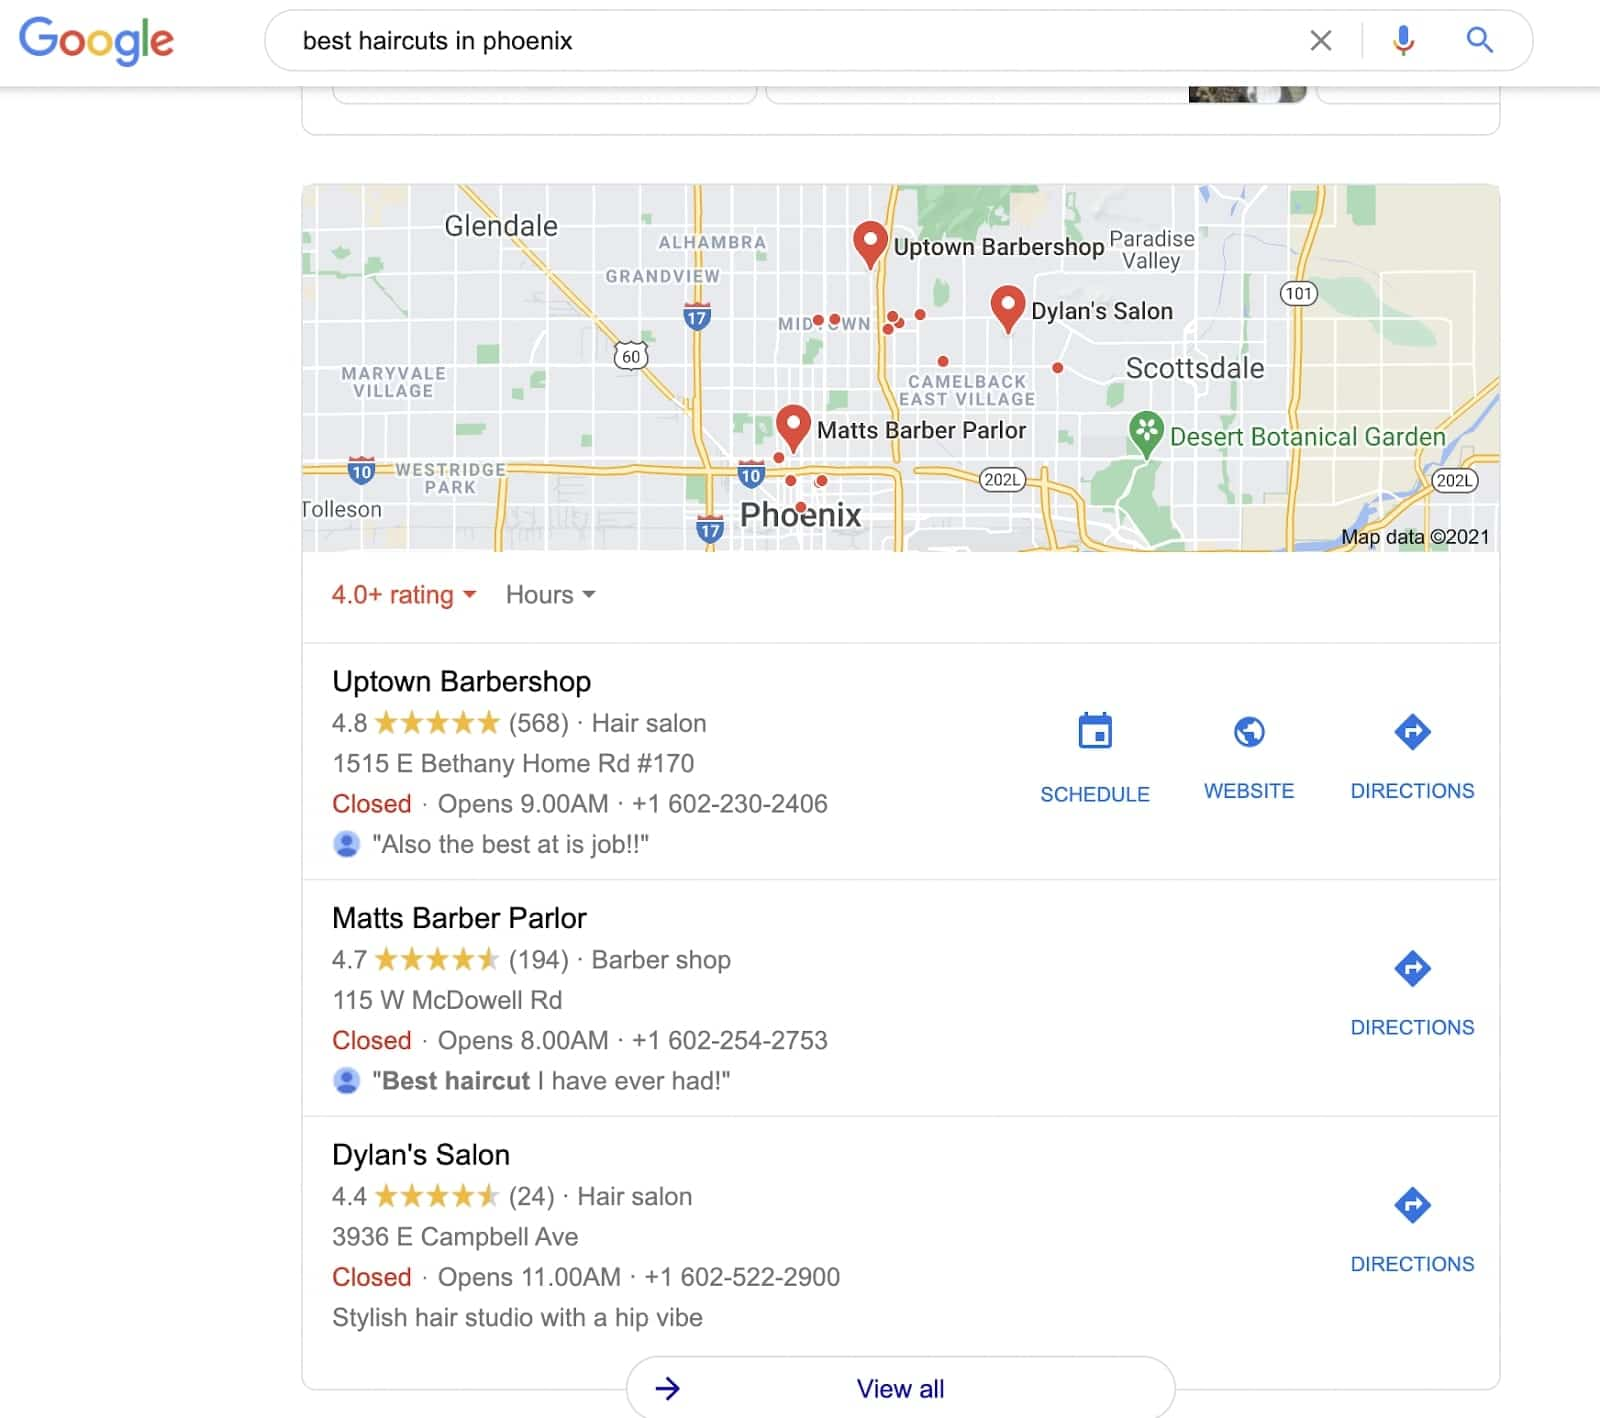 Results from google query 'best haircuts in phoenix'